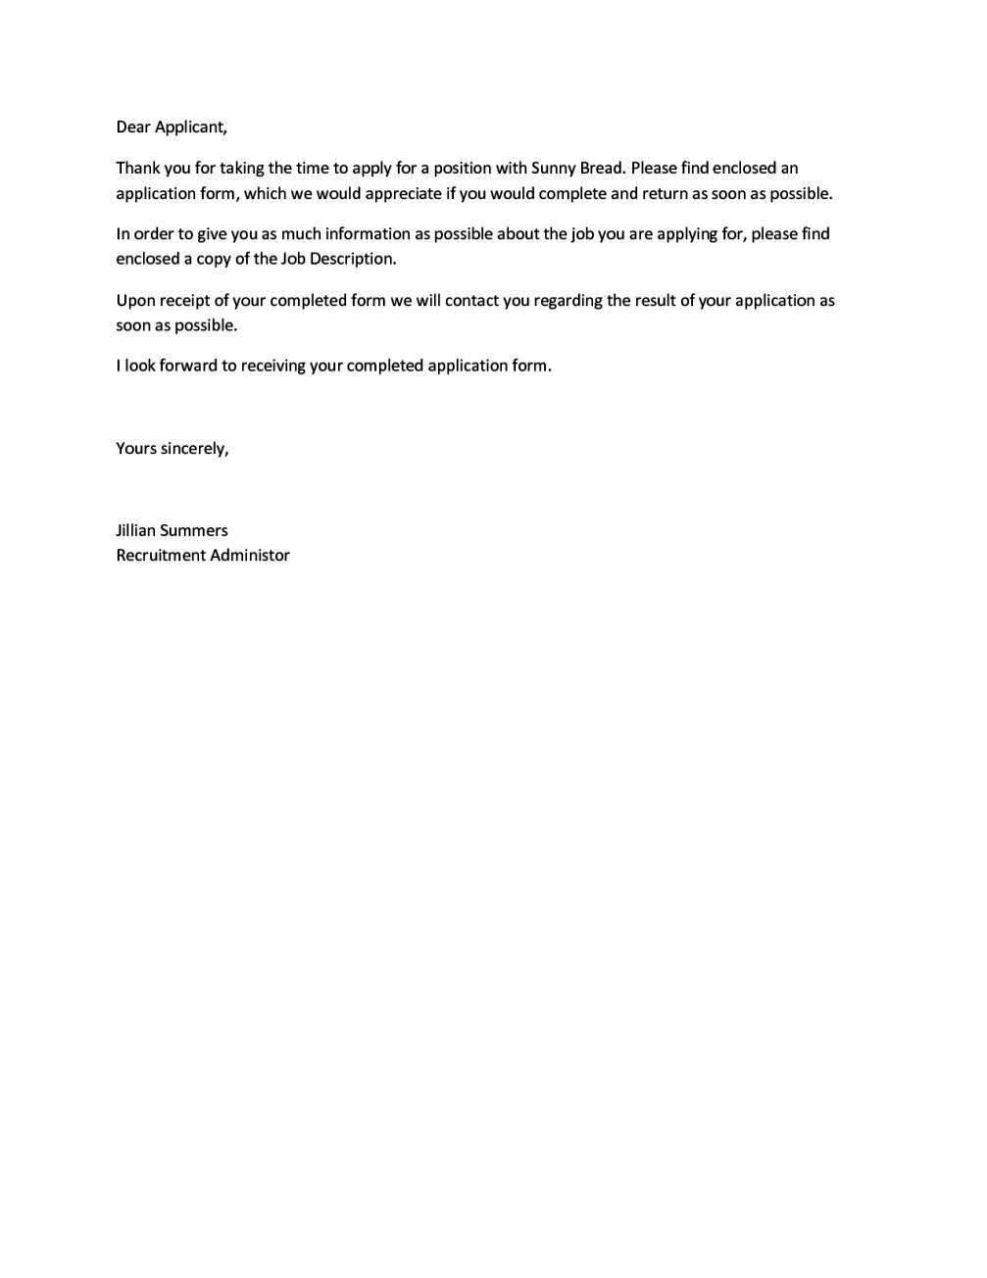 Job-Application-Follow-Up-Email-Template Job Application Cover Letter Email Template on to write, what is, for practice management, for academic, sample uk, uk examples, for real or potential, template for senior,